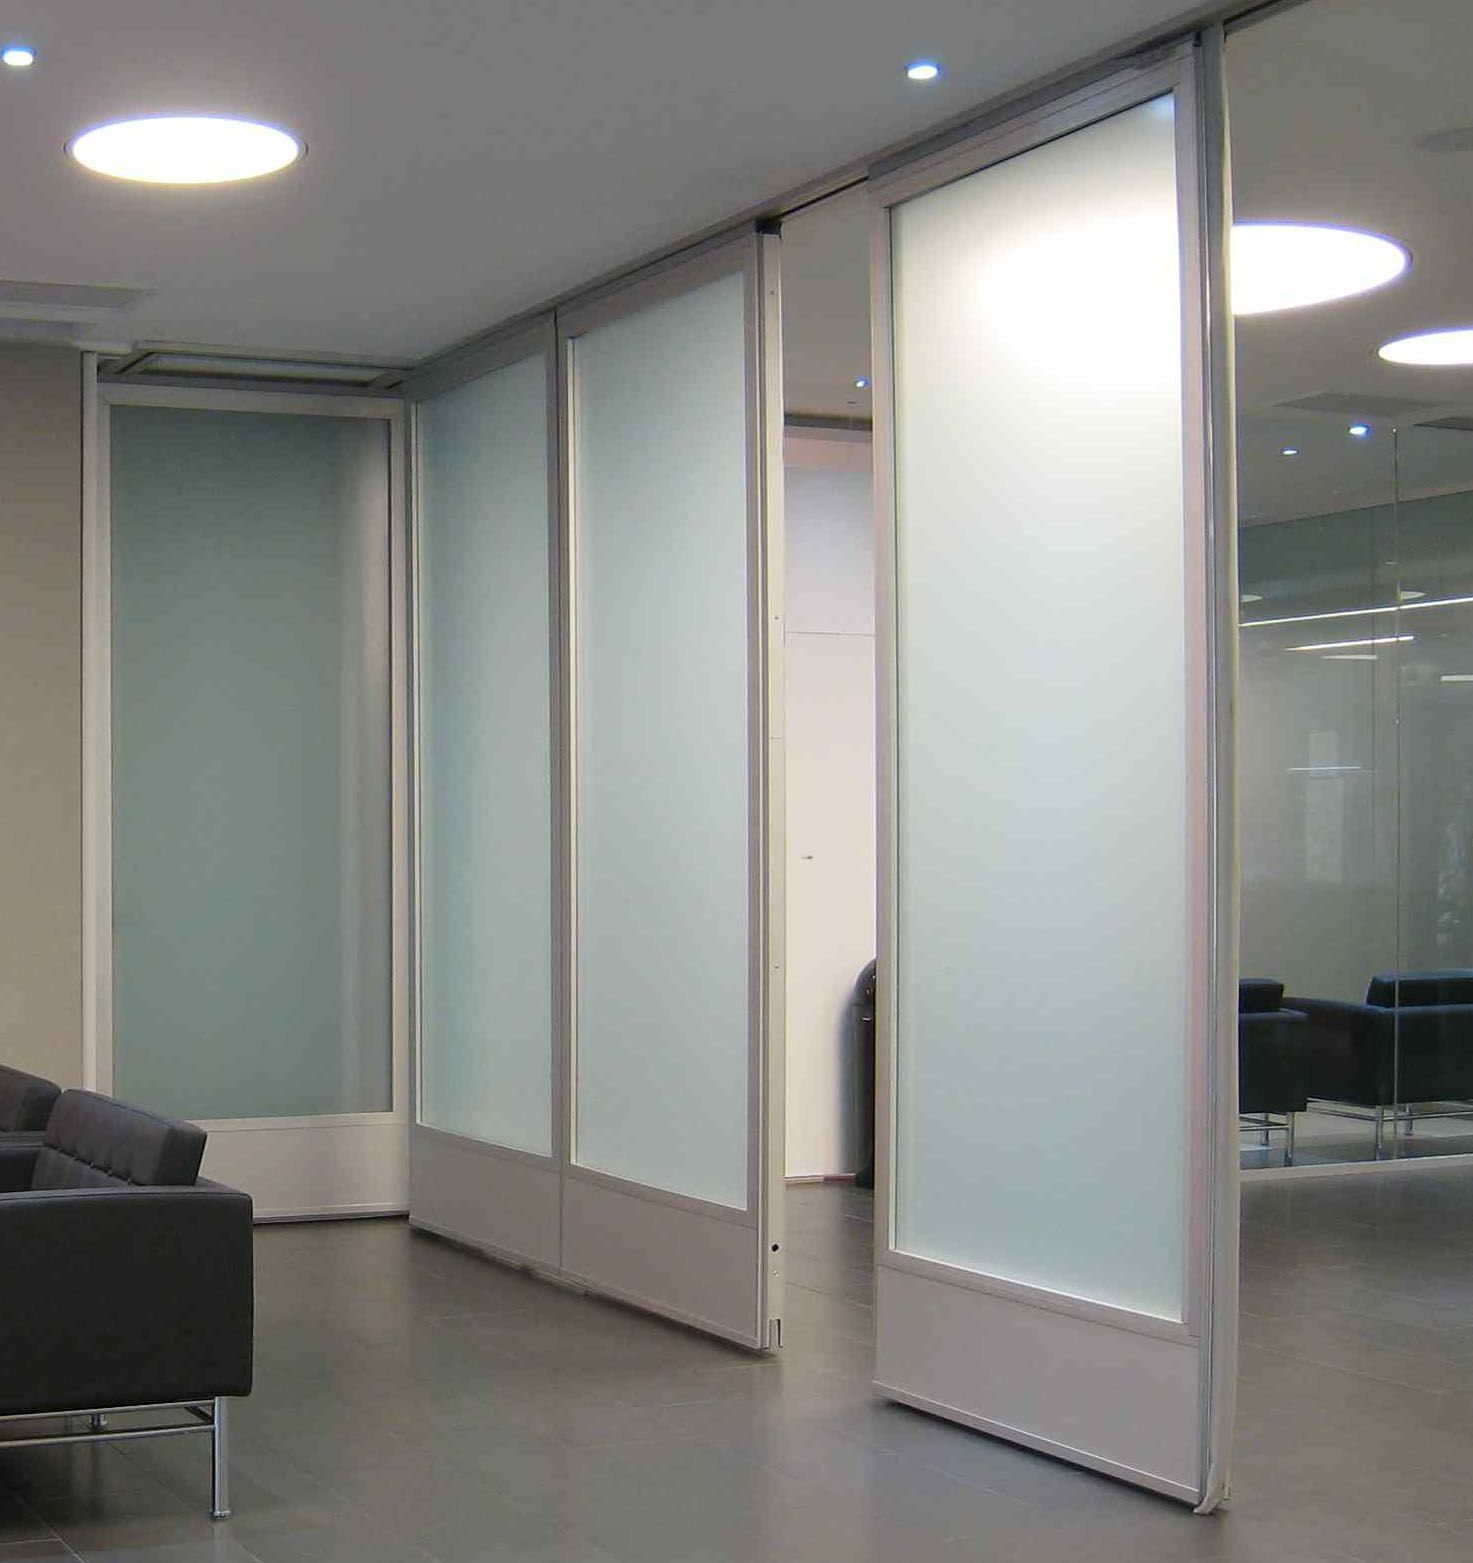 opaque glass wall dividers - google search | home improvement